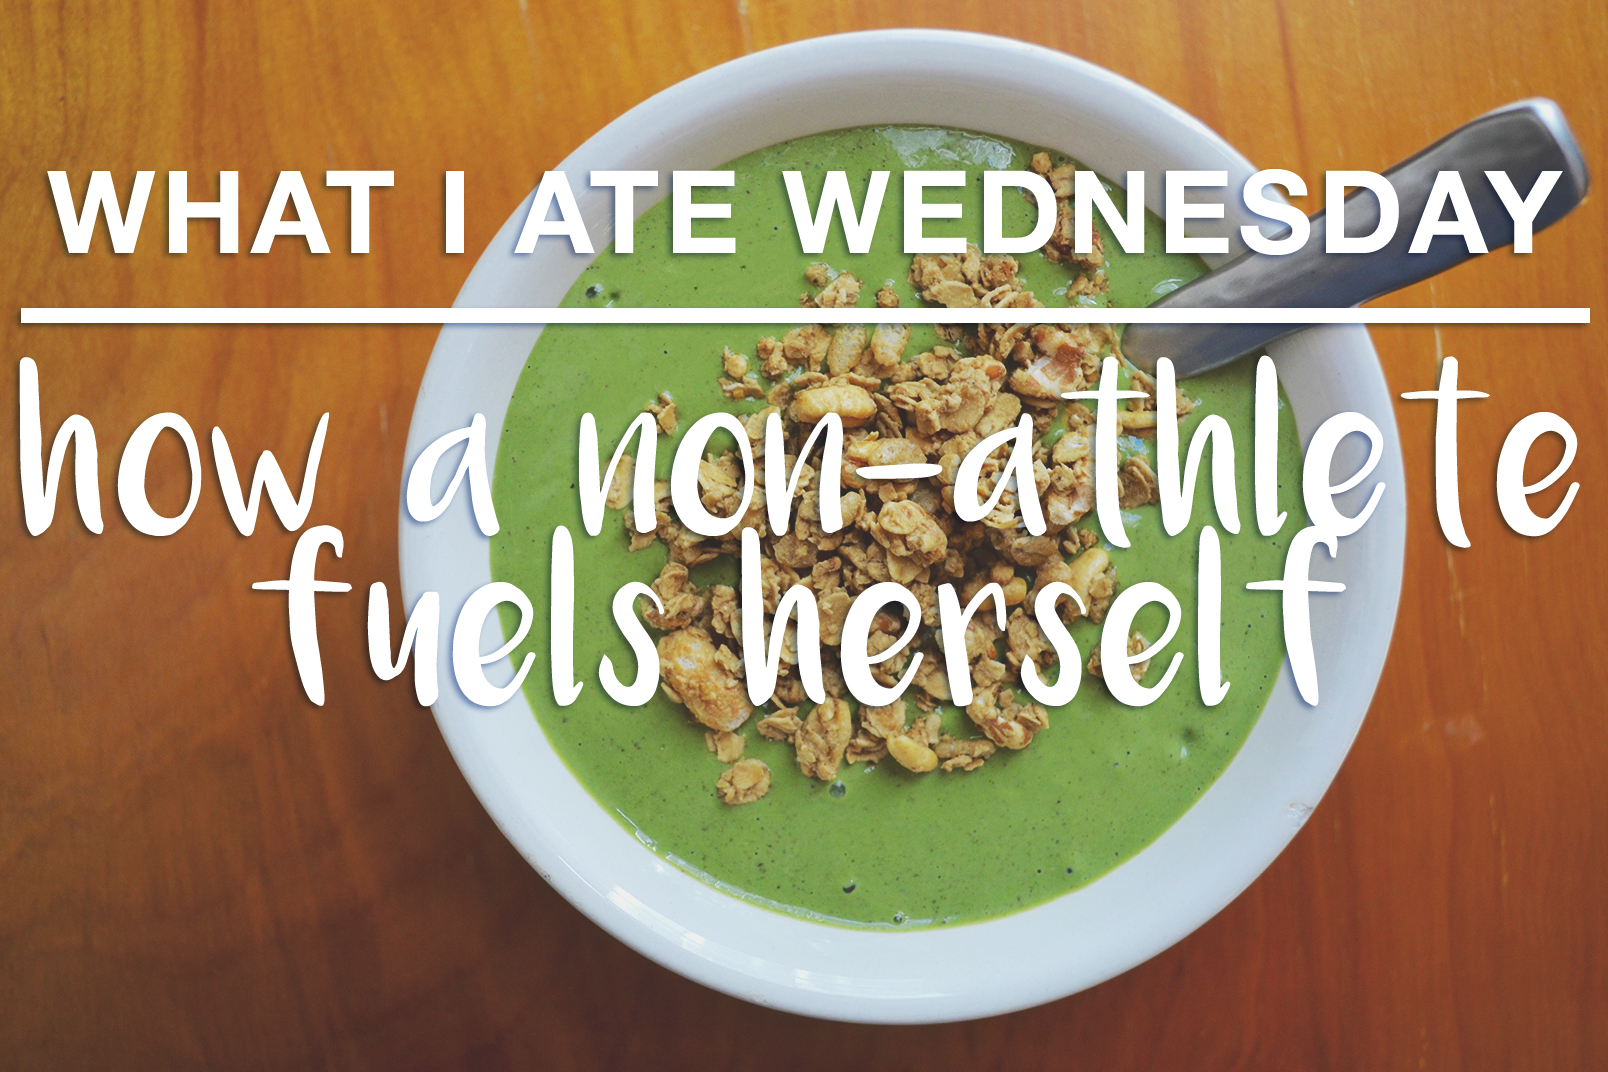 WIAW green smoothie bowl - actively gemma